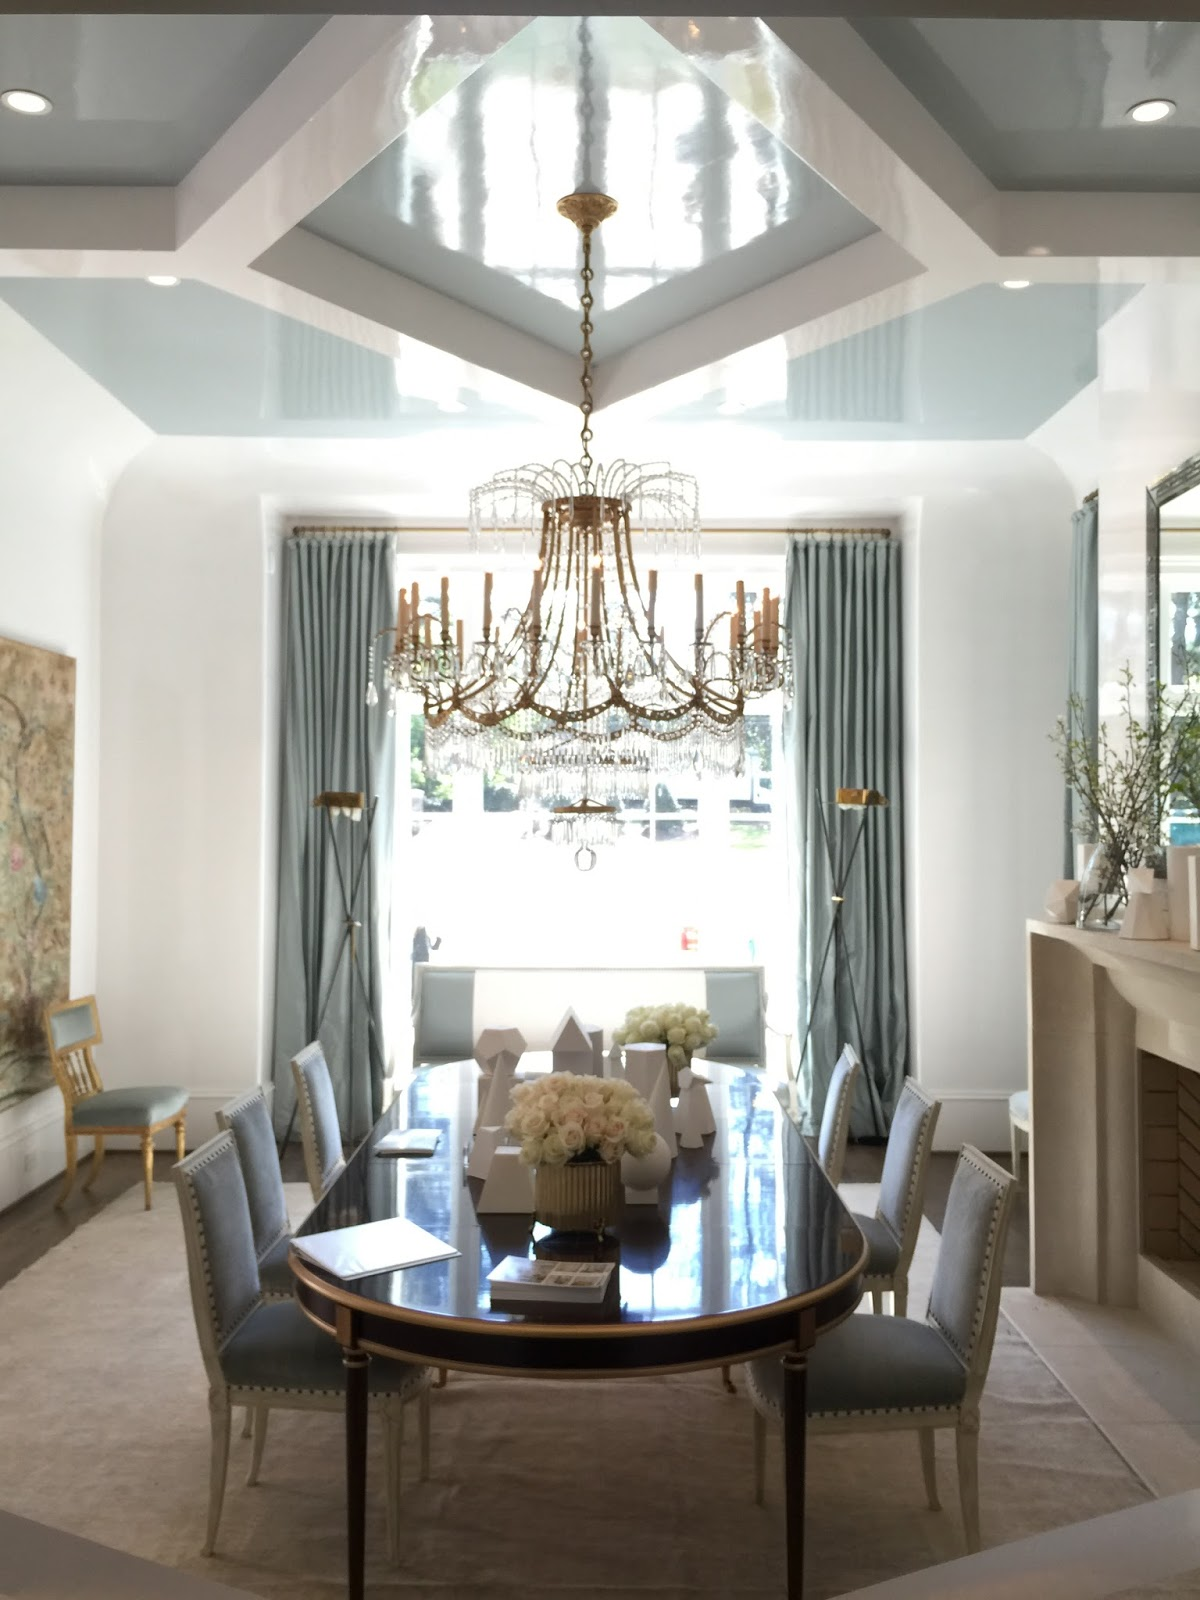 The Dining Room Designed By Suzanne Kasler On Suzanne Kasler Interiors.